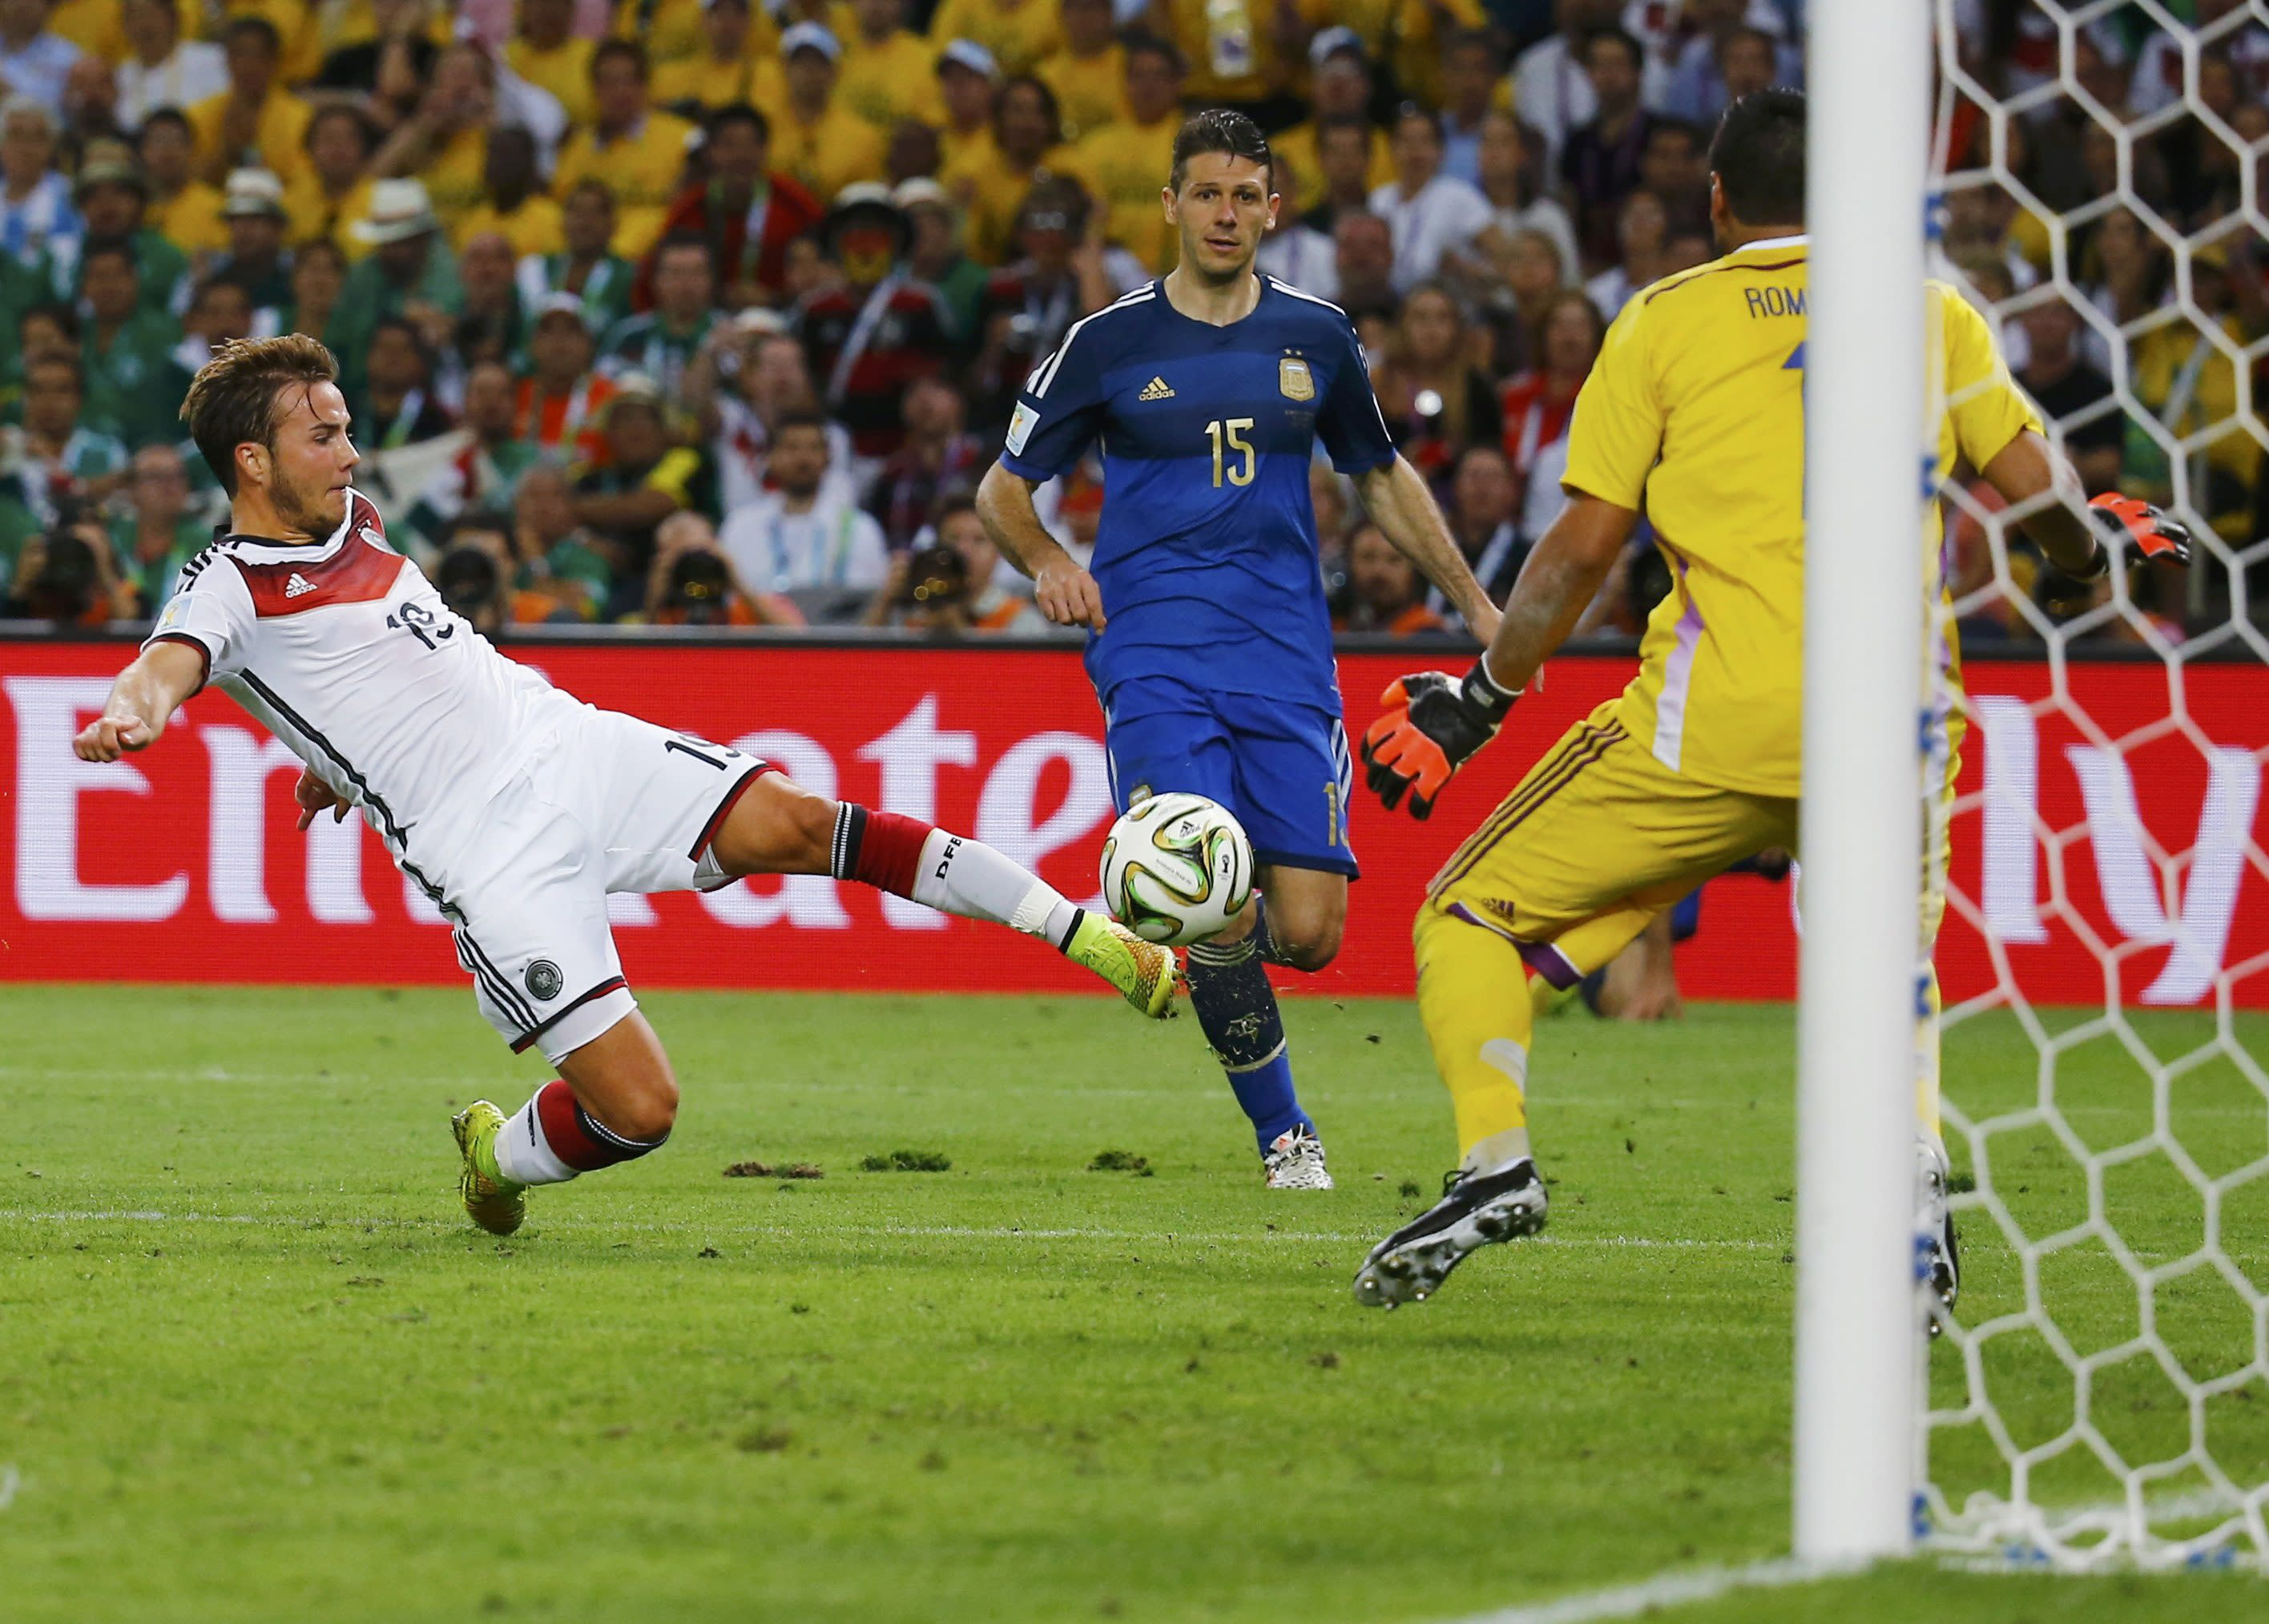 Germany's Mario Goetze shoots to score a goal past Argentina's goalkeeper Sergio Romero during extra time in their 2014 World Cup final at the Maracana stadium in Rio de Janeiro July 13, 2014. REUTERS/Kai Pfaffenbach (BRAZIL - Tags: SOCCER SPORT WORLD CUP TPX IMAGES OF THE DAY) TOPCUP